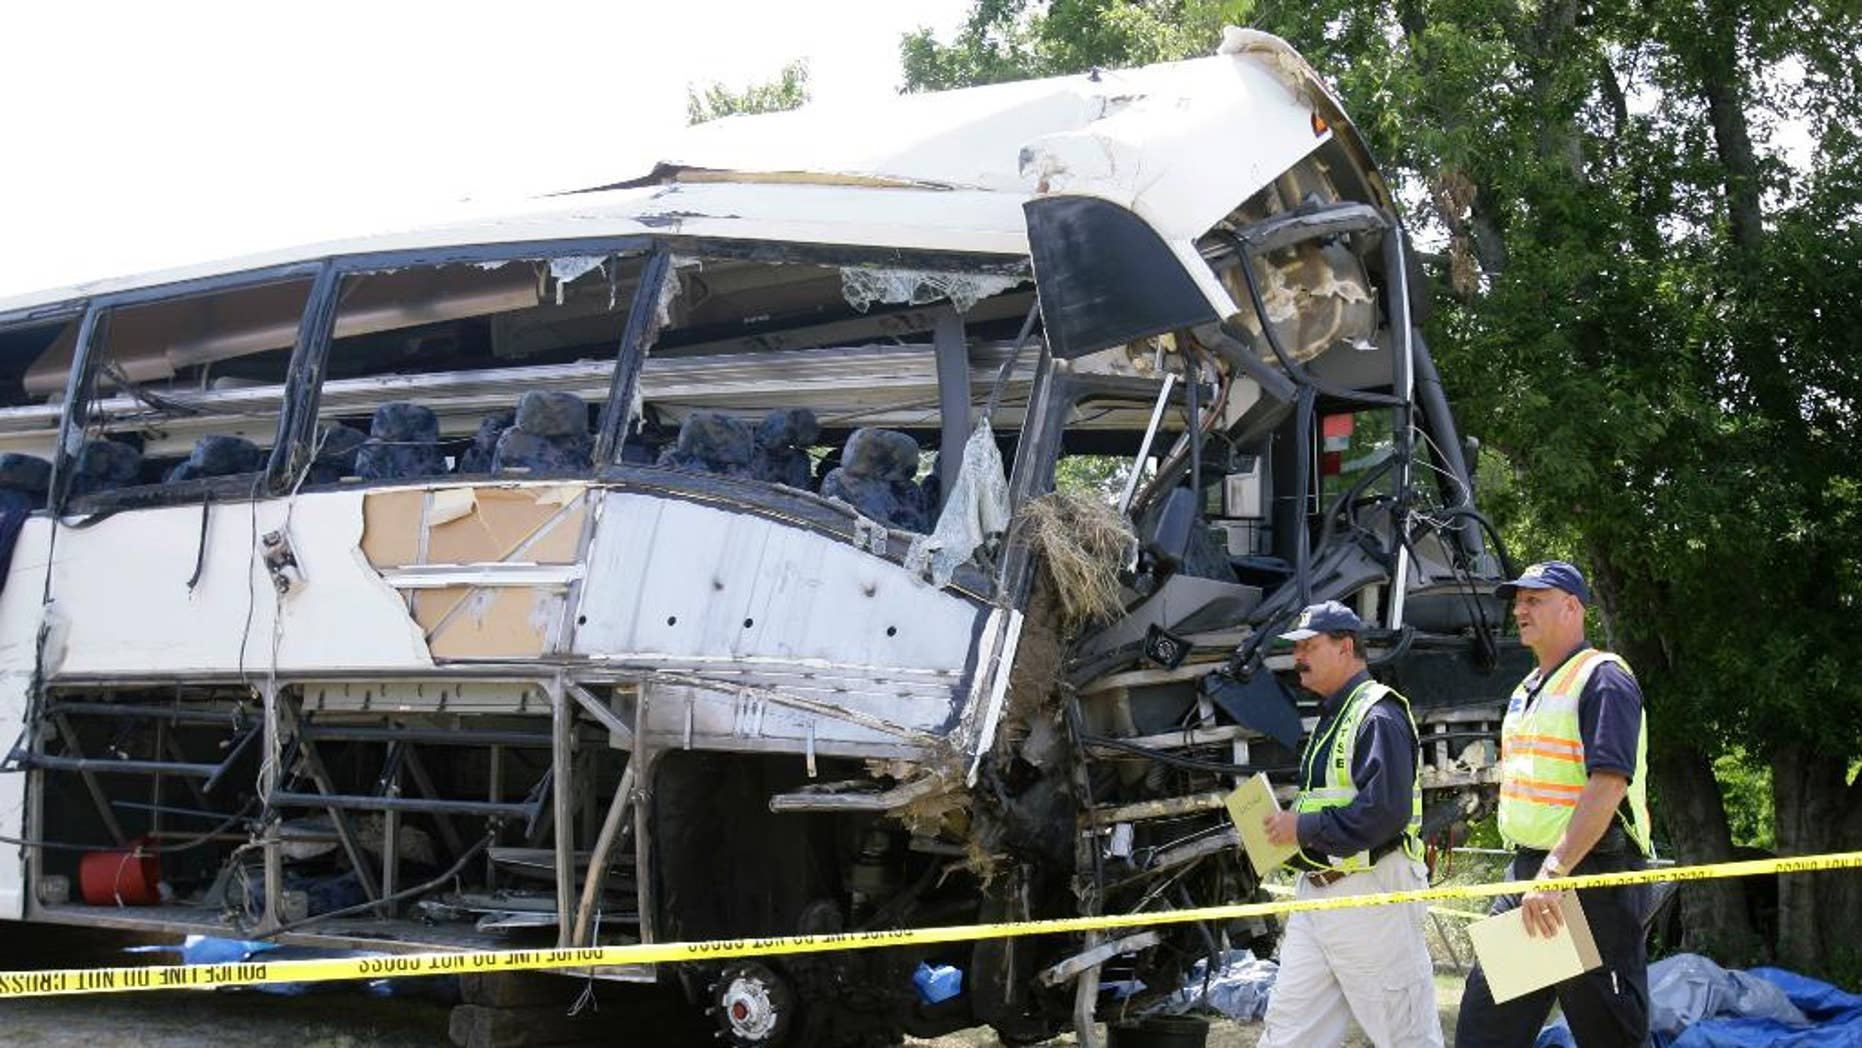 FILE - National Transportation Safety Board investigators David Rayburn, left, and Robert Accetta walk in this Aug. 10, 2008 file photo past a charter bus involved in a deadly accident early Friday that killed 17 people and left at least eight others in critical condition in Sherman, Texas. The owner of the Houston bus company who was charged after a 2008 crash has avoided prison after a federal judge sentenced him to three years of probation in a plea agreement Friday Oct. 24, 2014.  (AP Photo/Matt Slocum, File)